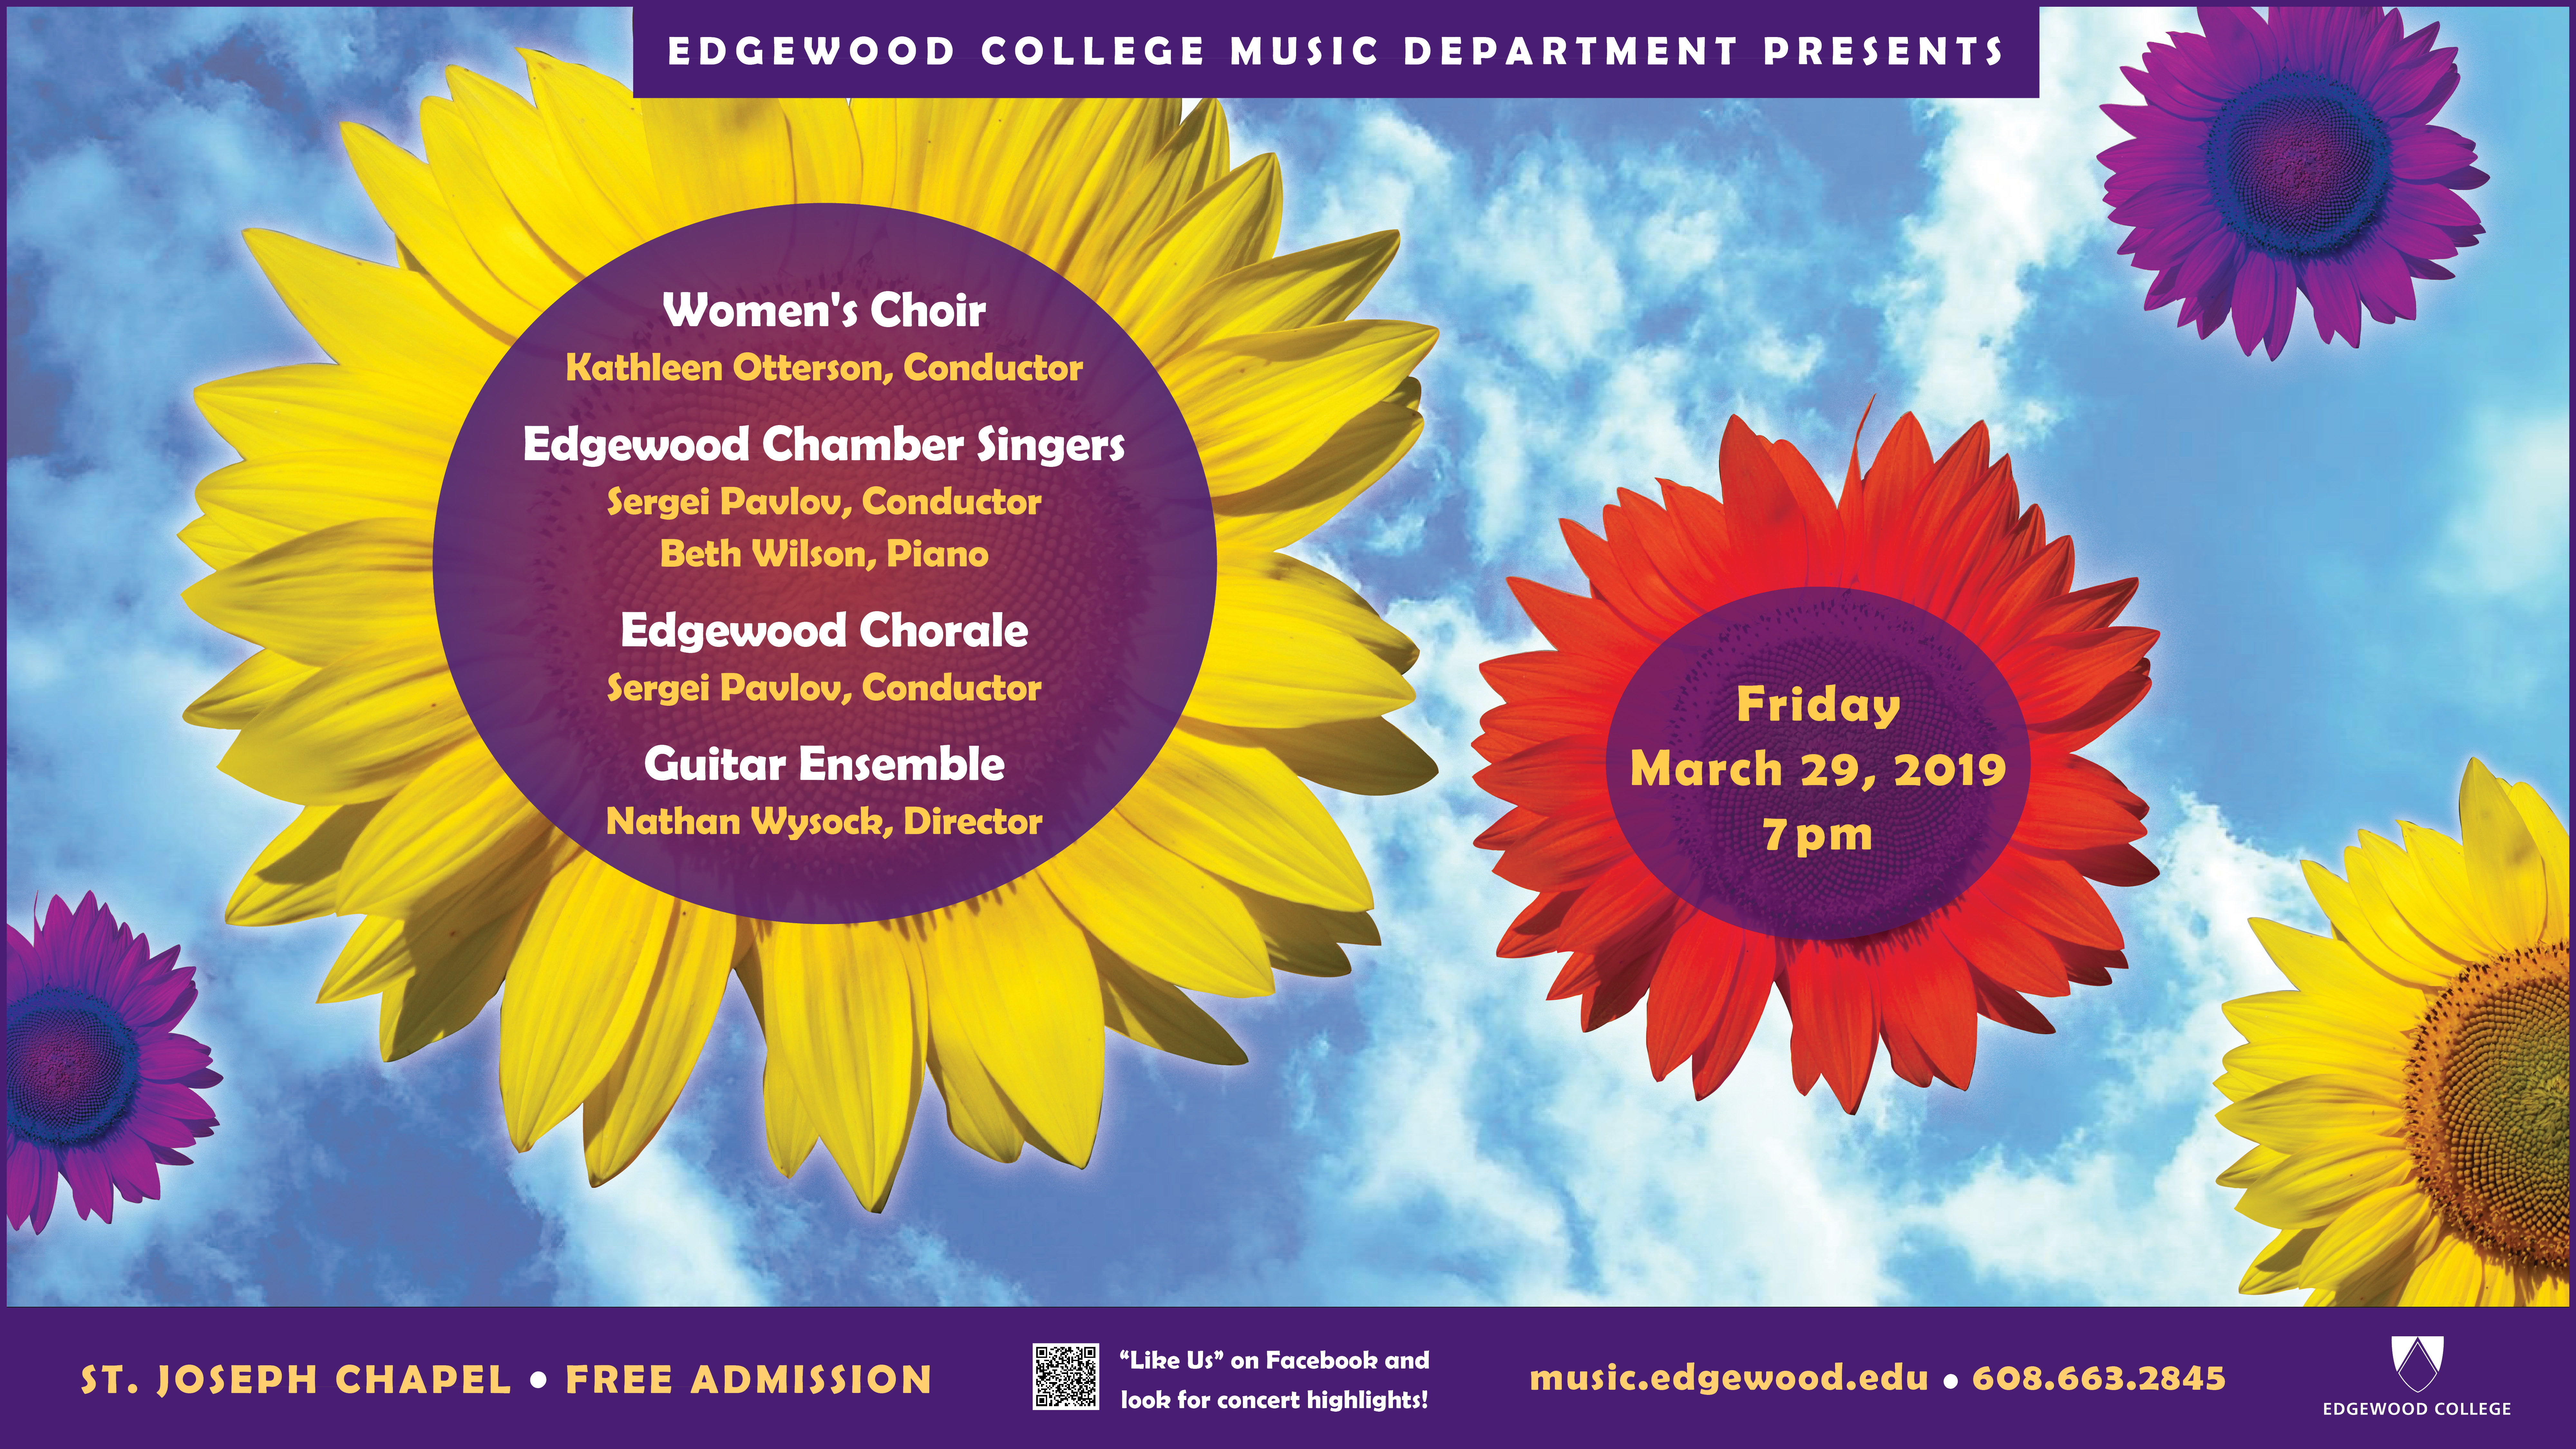 Women's Choir, Chamber Singers, Edgewood Chorale, and Guitar Ensemble Concert Poster